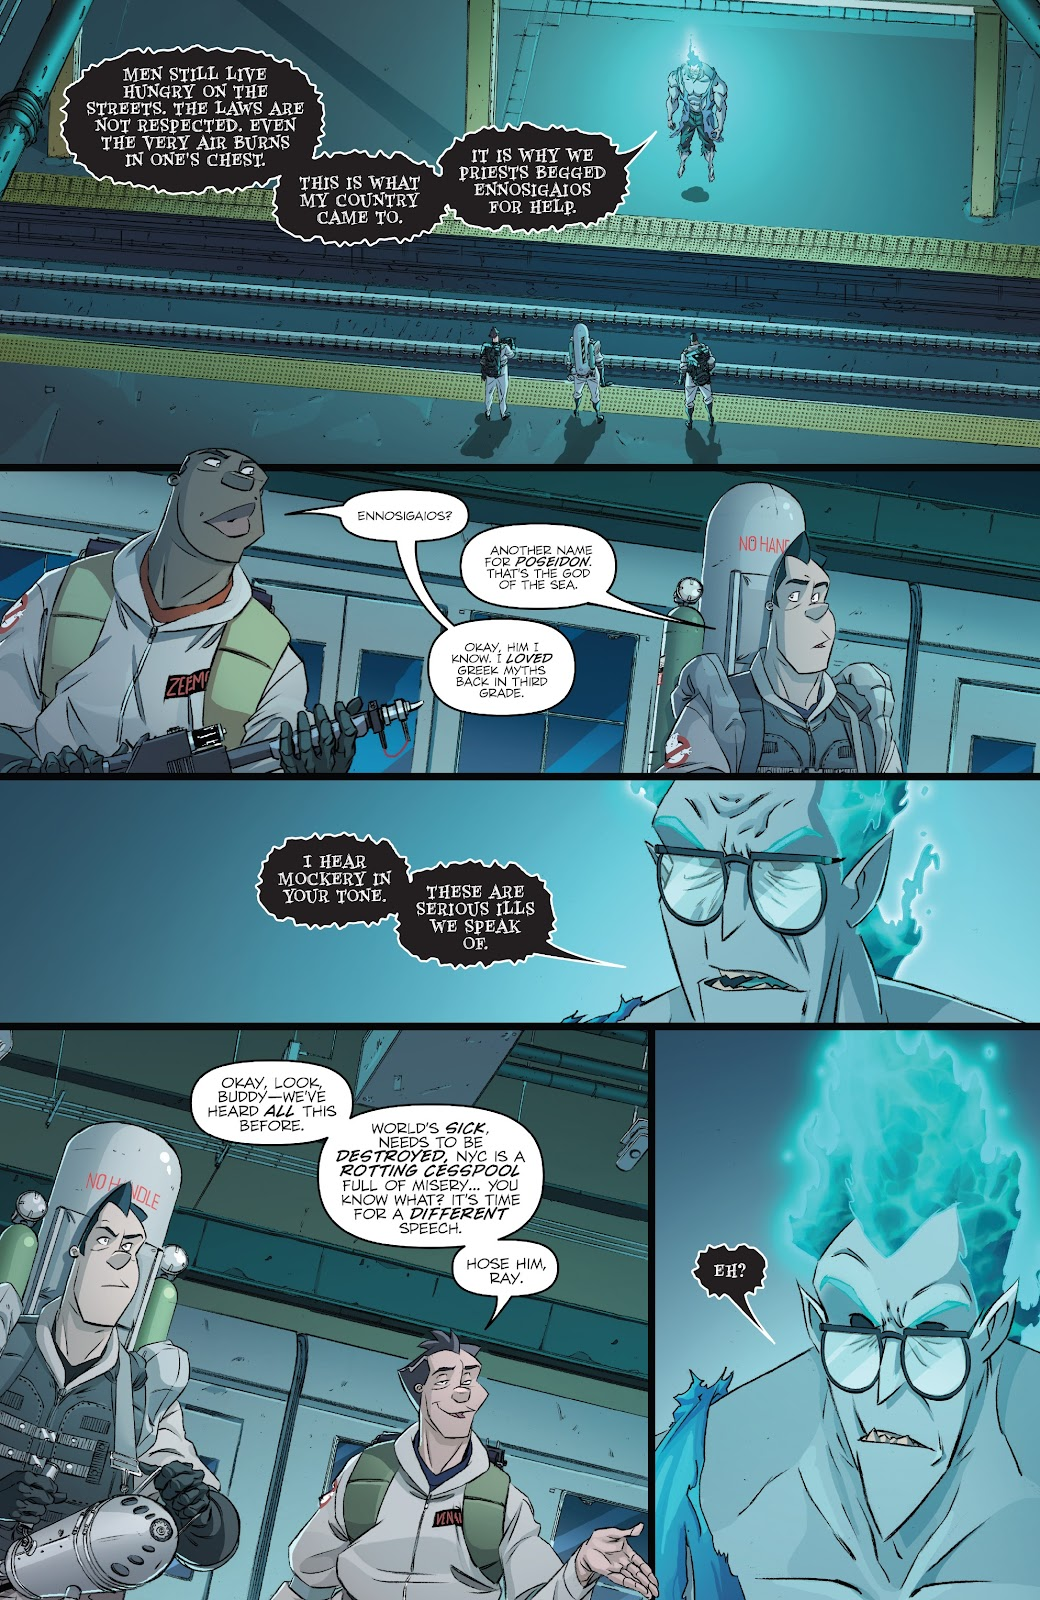 Read online Ghostbusters 35th Anniversary: Ghostbusters comic -  Issue # Full - 15